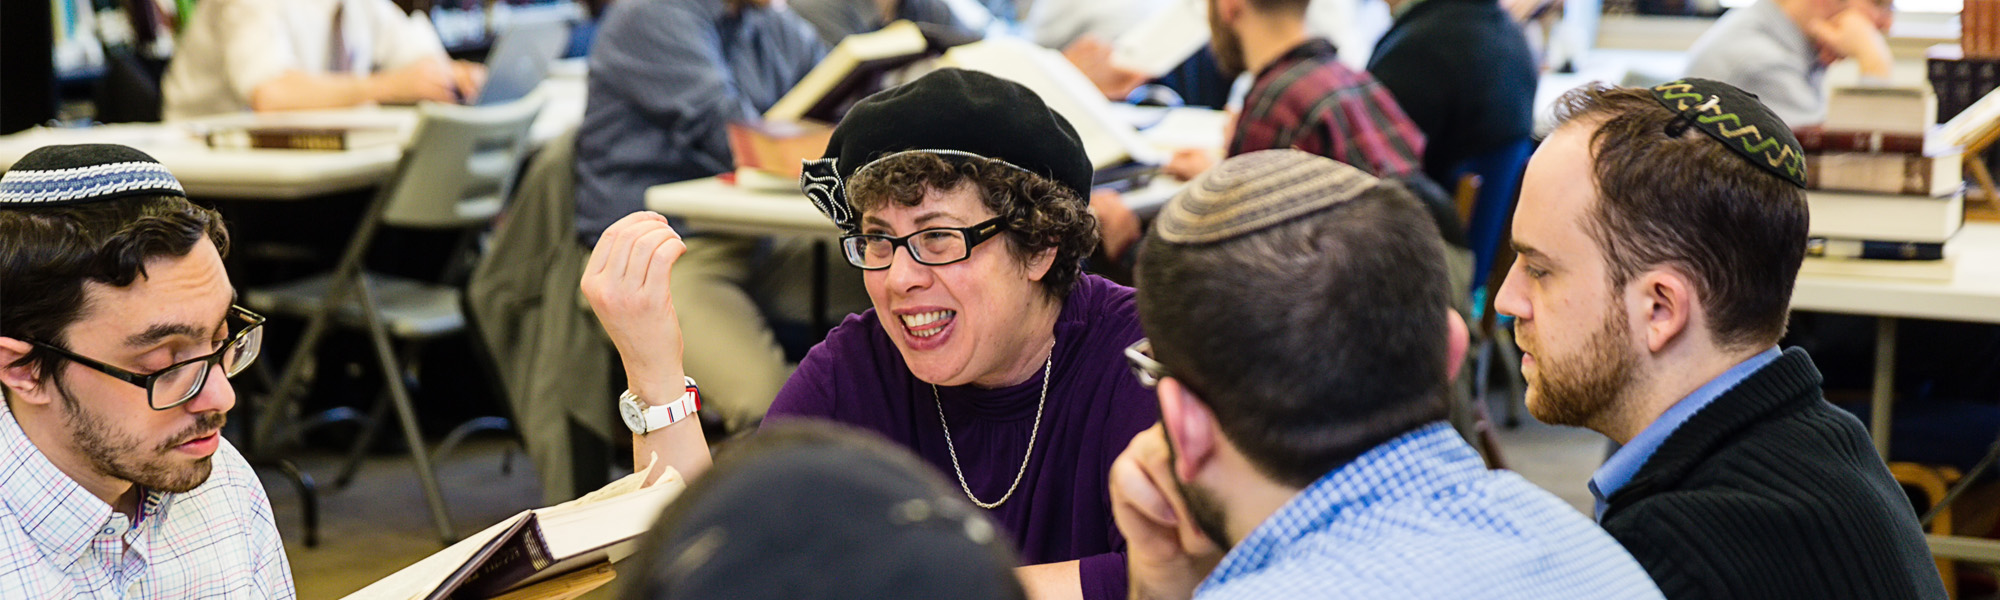 Online Donation Form - Yeshivat Chovevei Torah, Setting the standard in rabbinic education